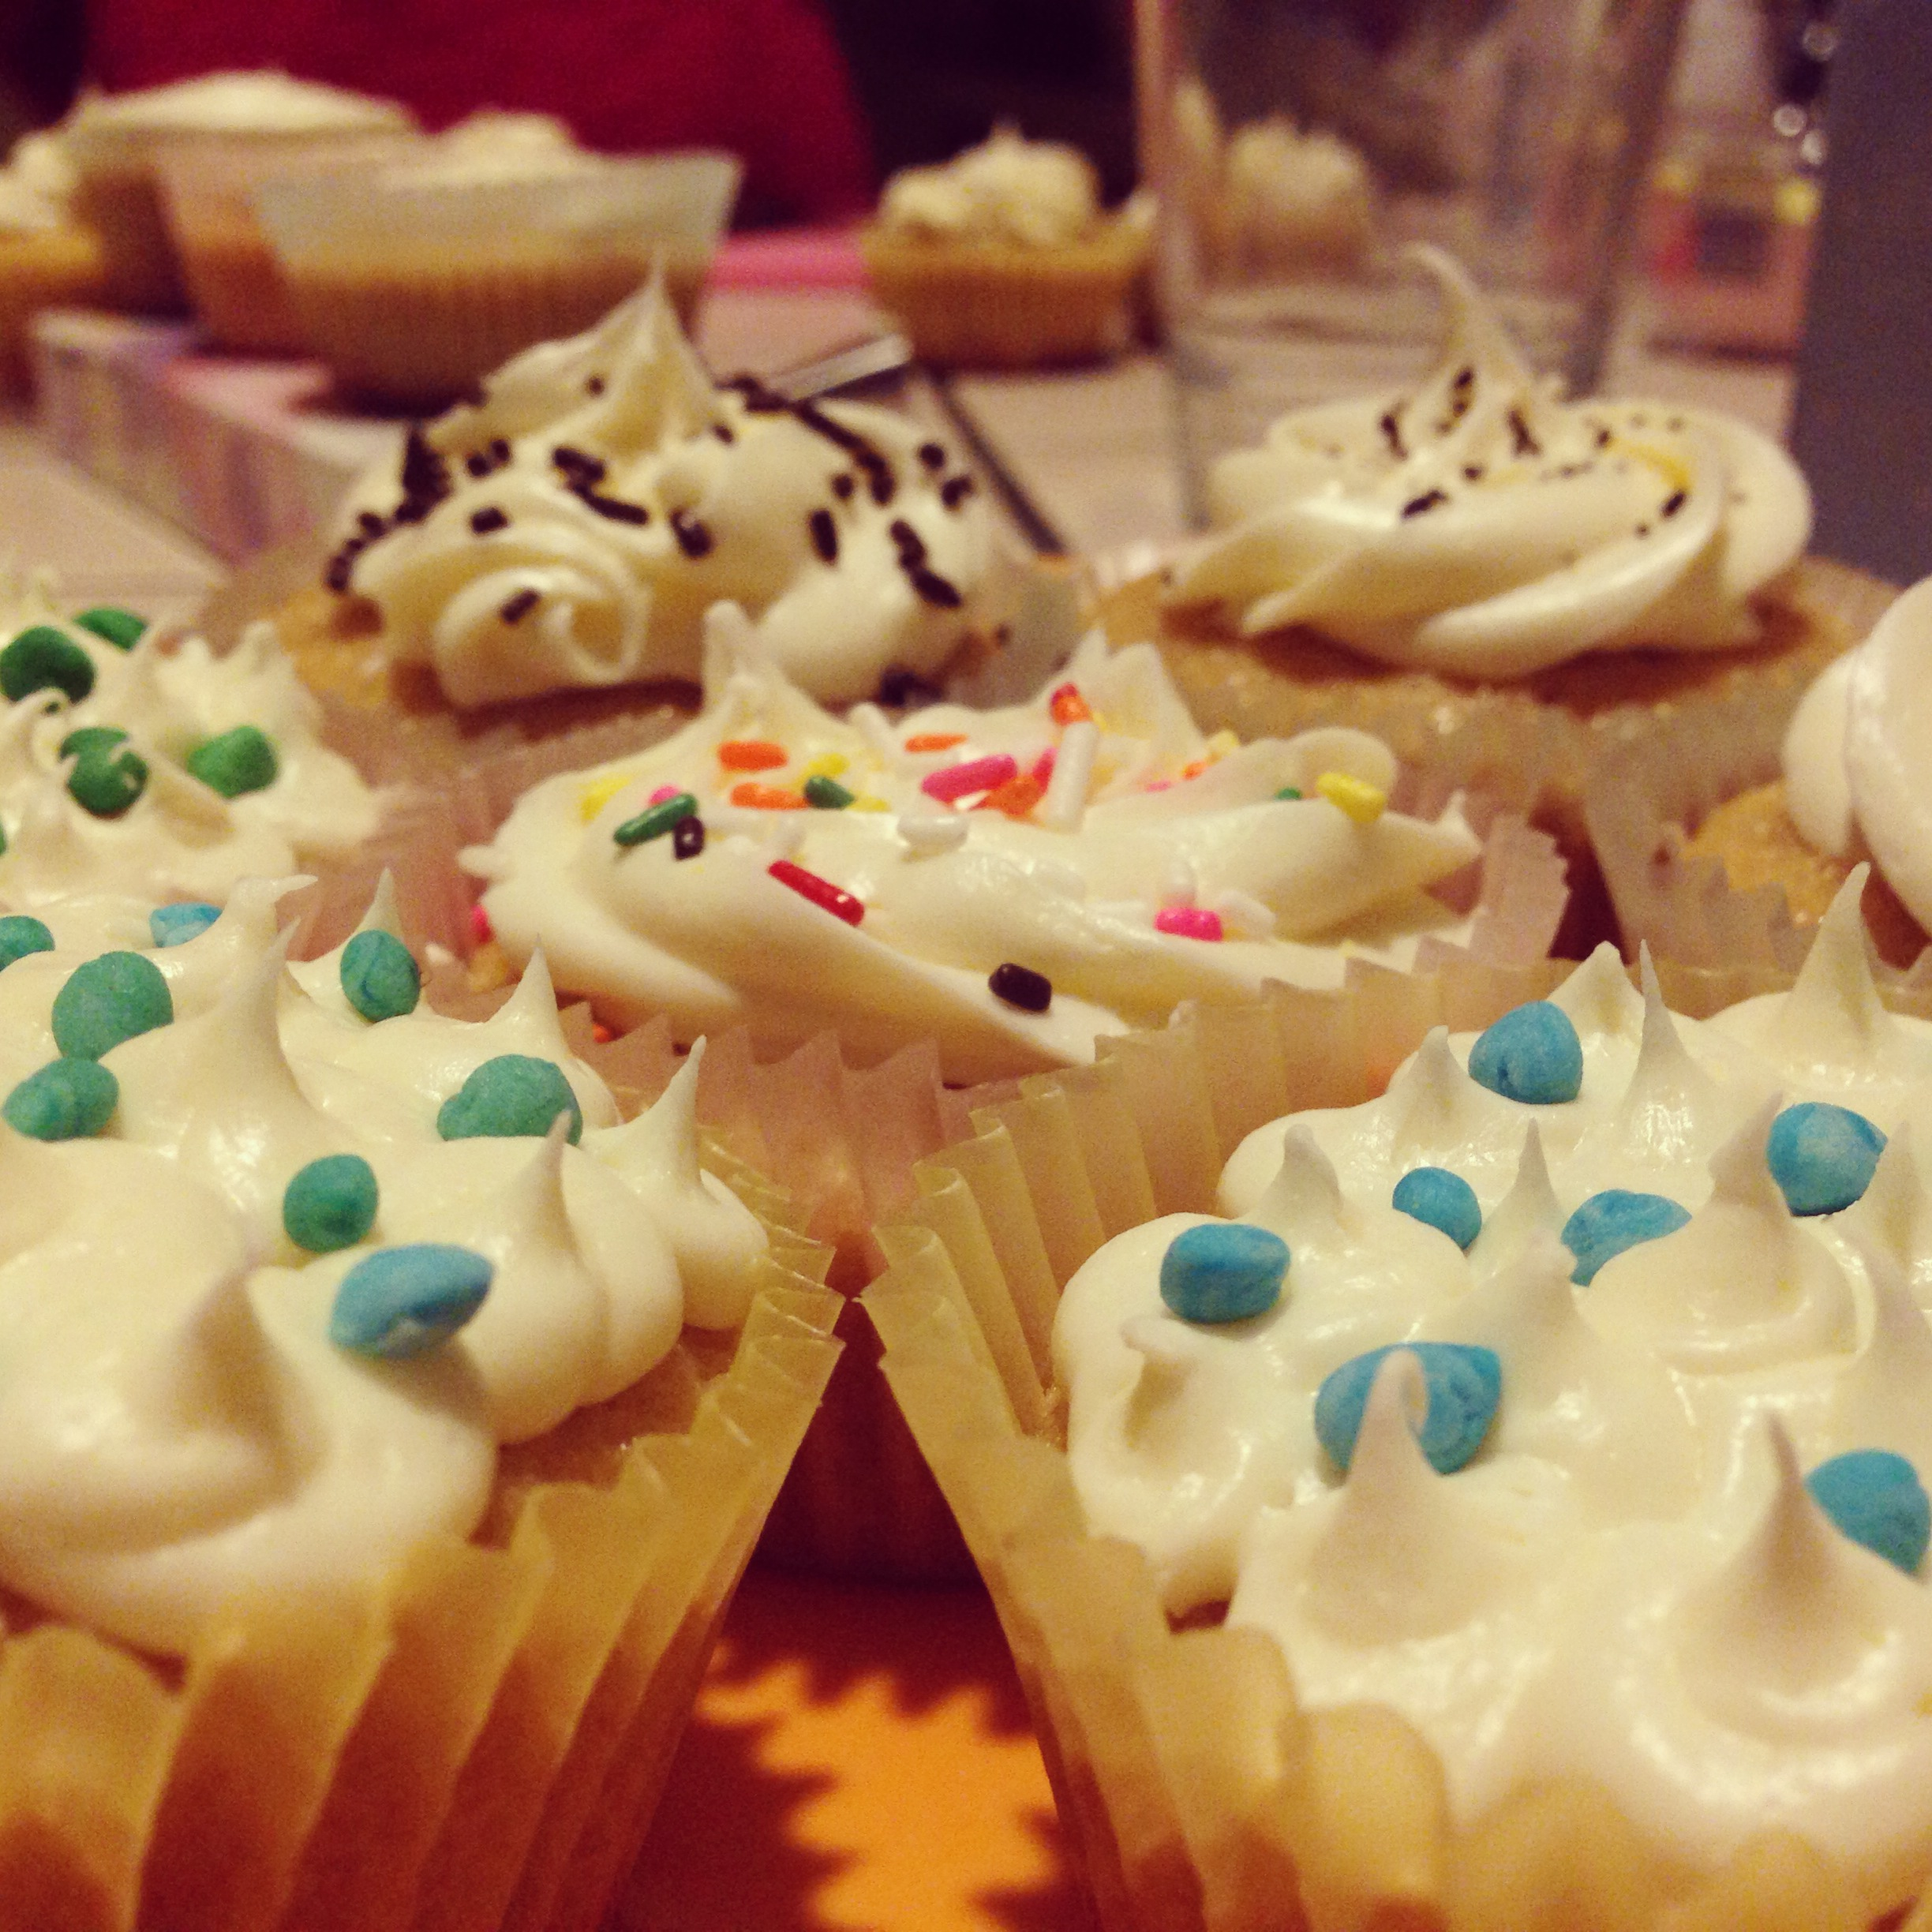 Jacqueline's cupcakes, an art form and sweet treat.